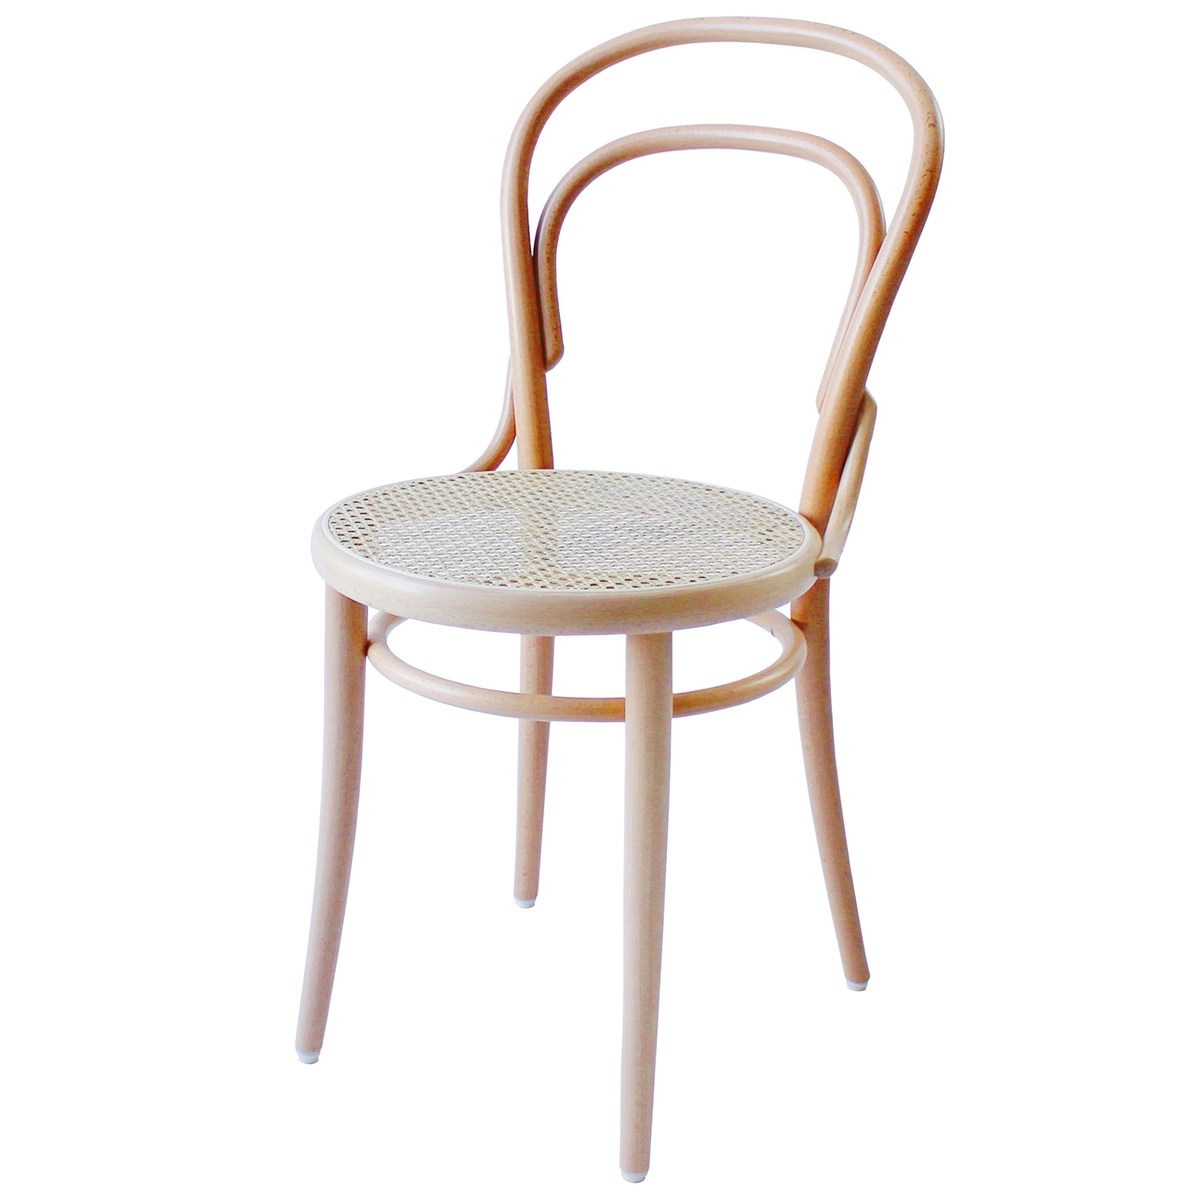 Ton Chair 14 Cane Natural Beech Finnish Design Shop